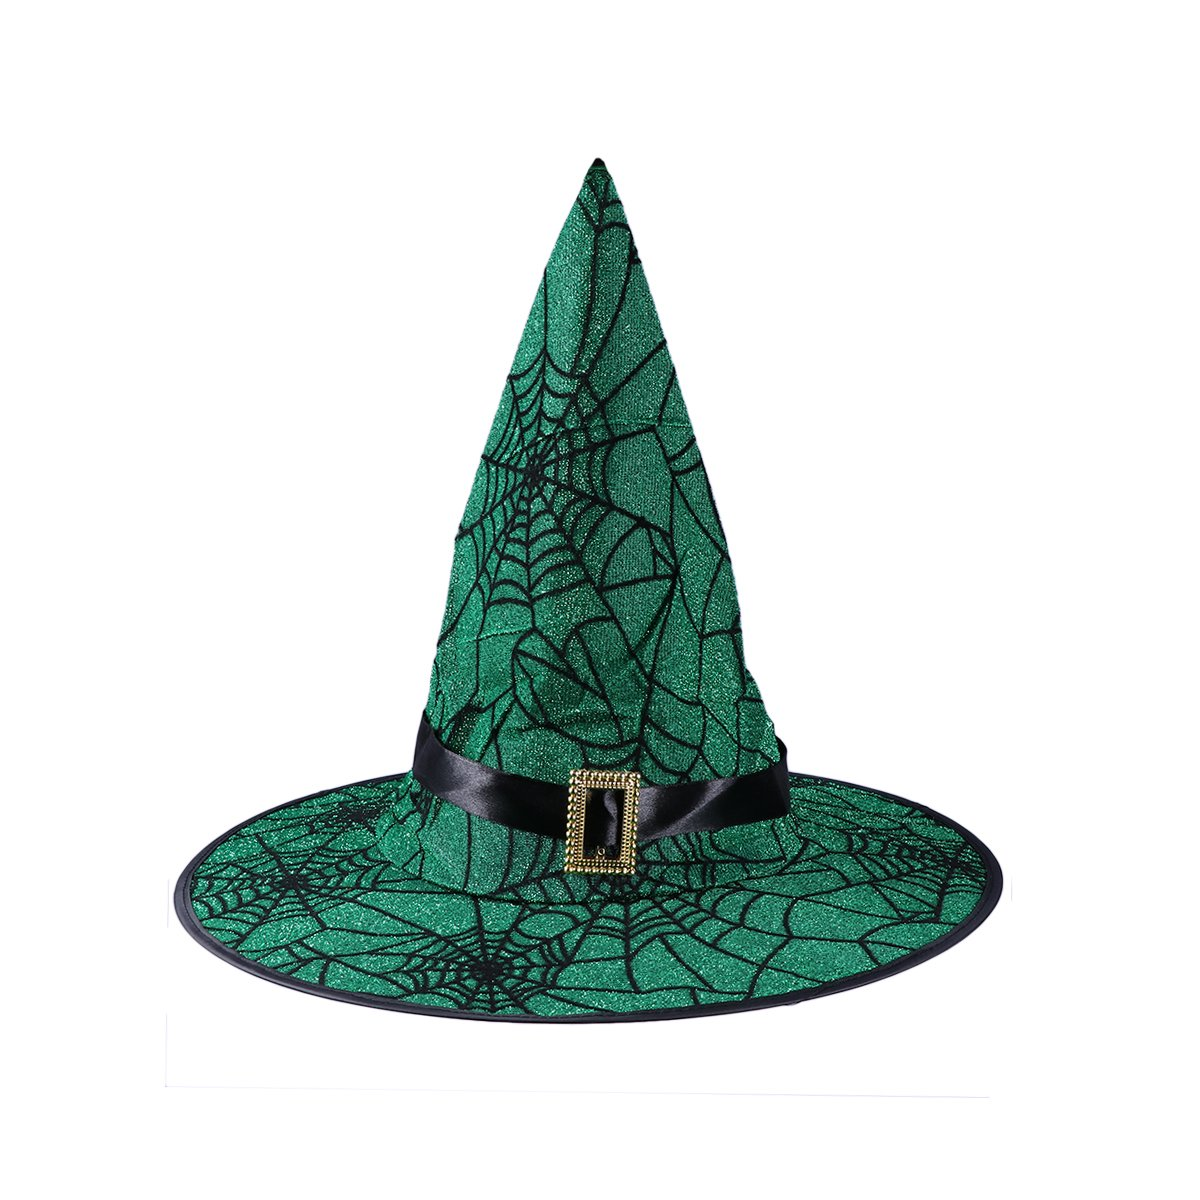 8eda7fe89ec AMOSFUN Wizard Hats Spider Web Pattern Witch Hat with Buckle Party Hat  Halloween Costumes Halloween Party Props Cosplay Costume Accessories for  Children ...